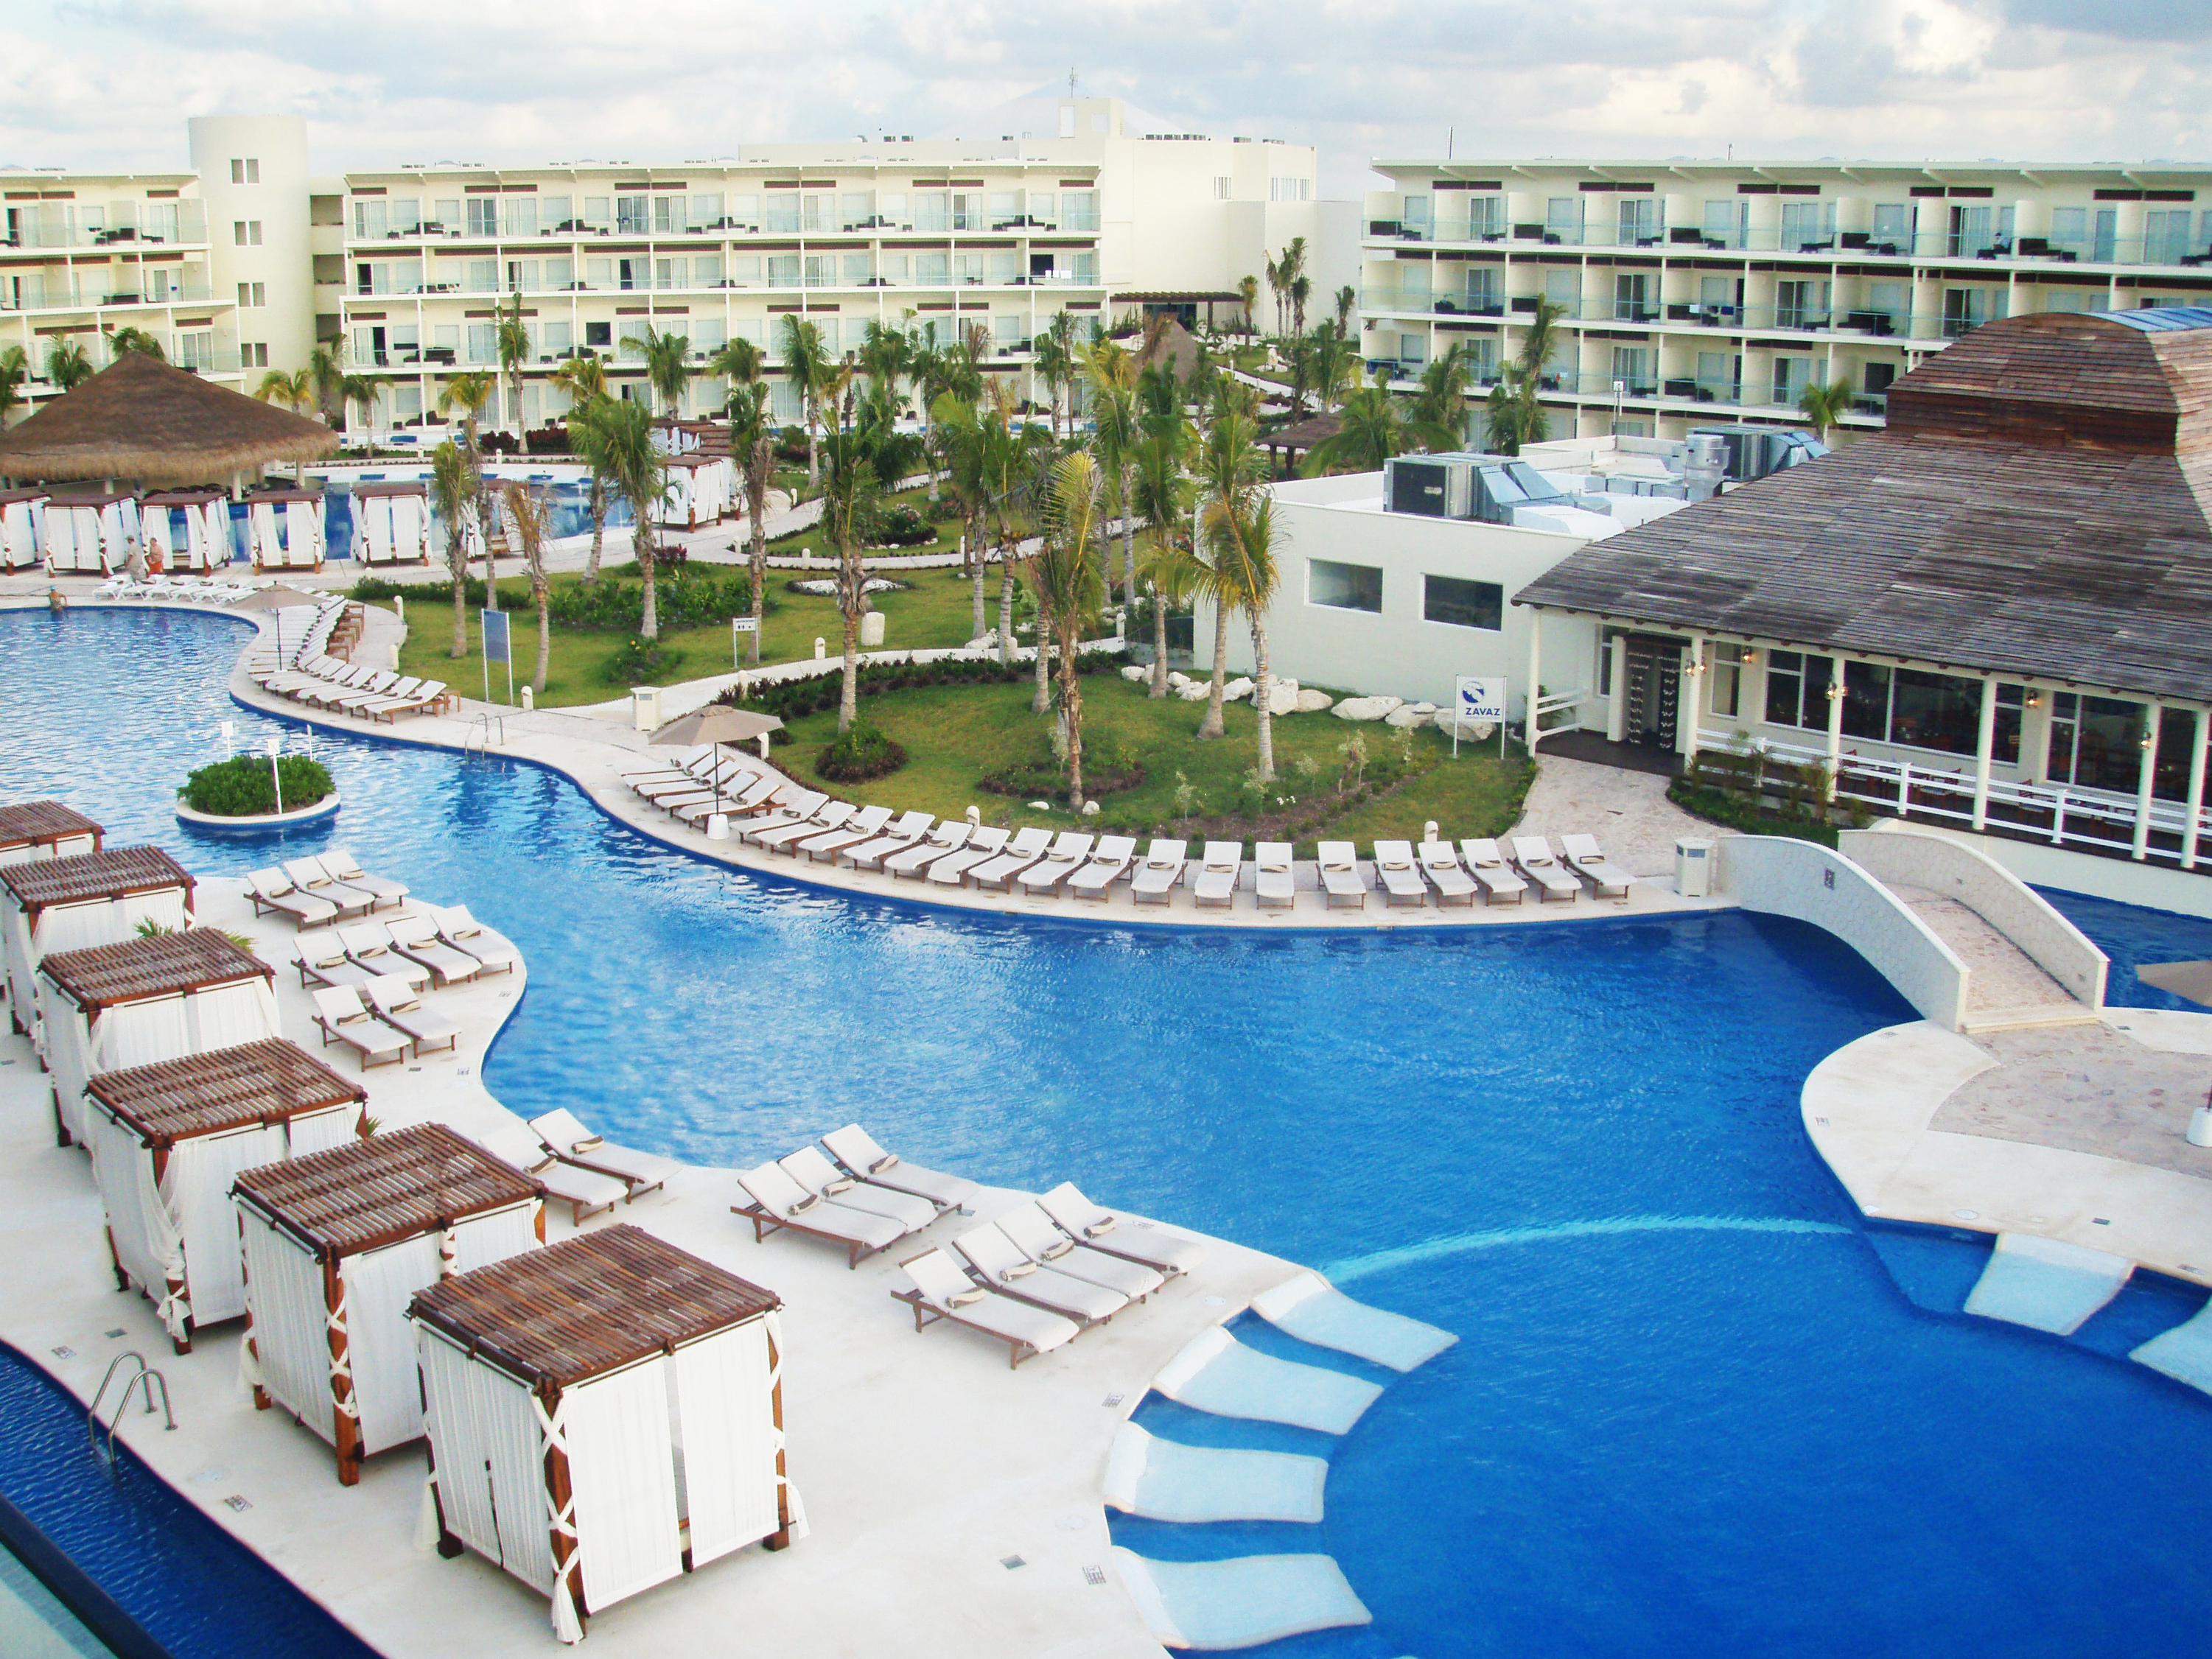 Hotel Pool with cabanas